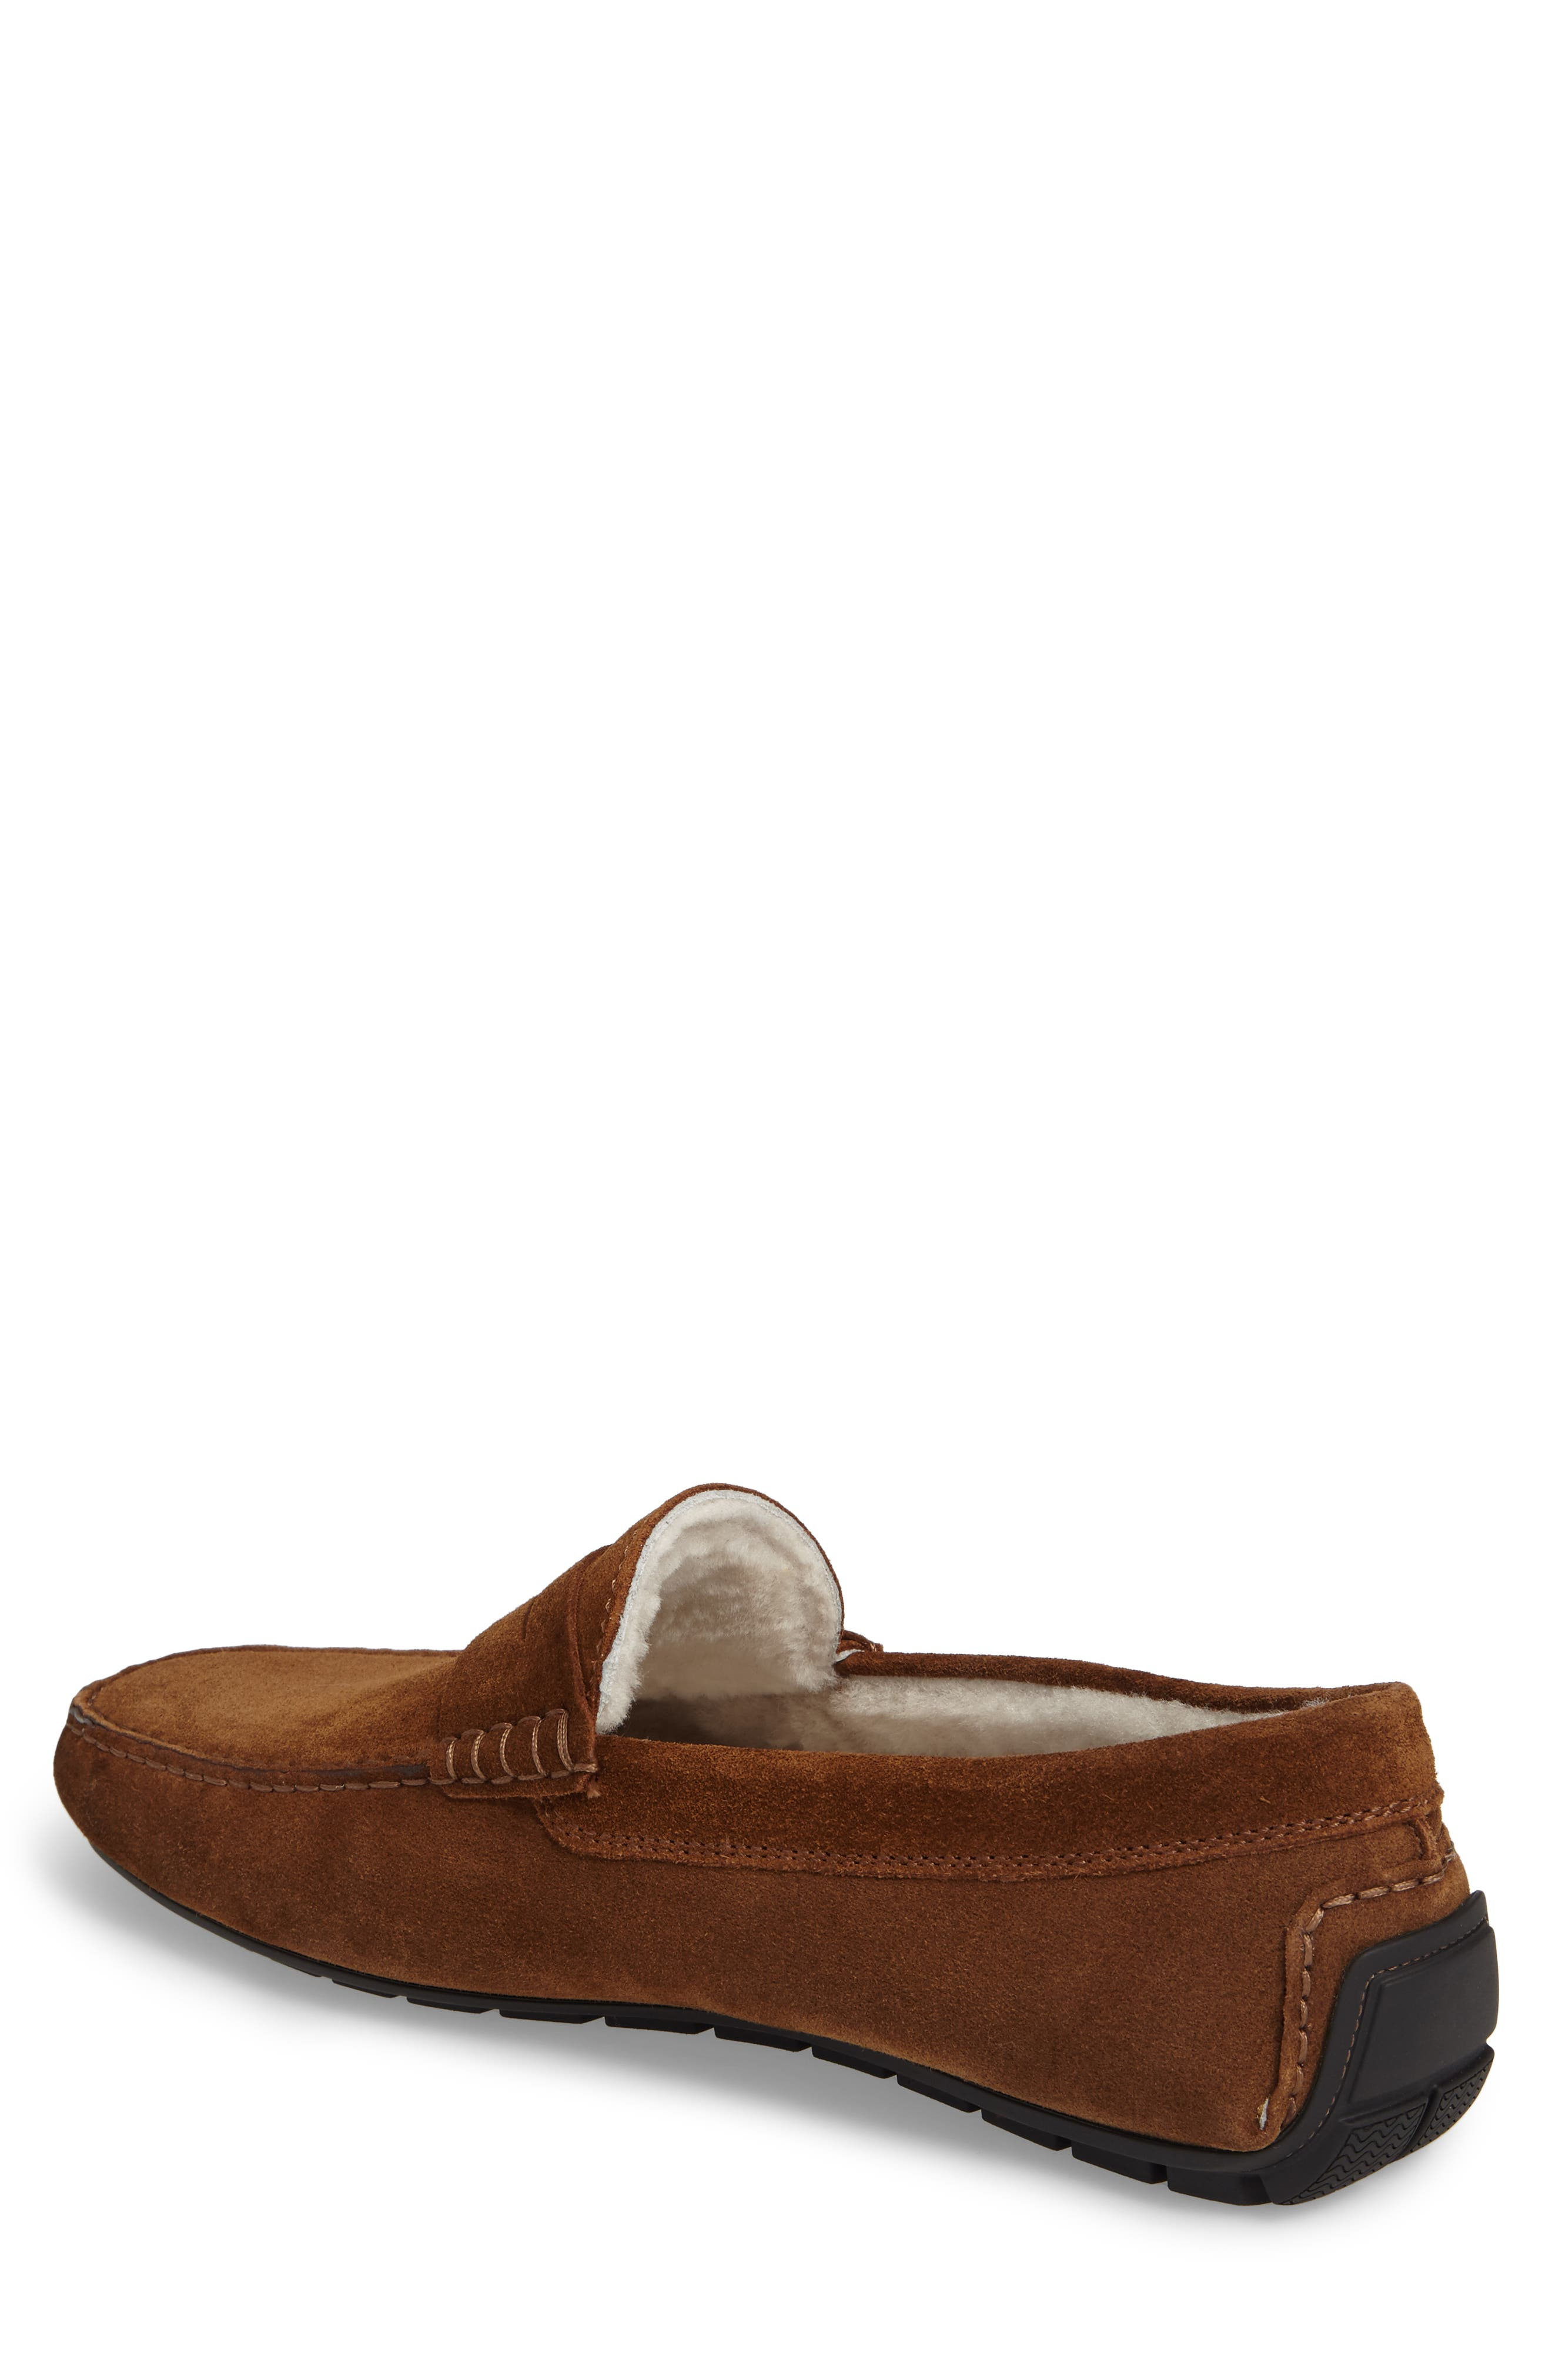 Alternate Image 2  - To Boot New York Norse Penny Loafer with Genuine Shearling (Men)